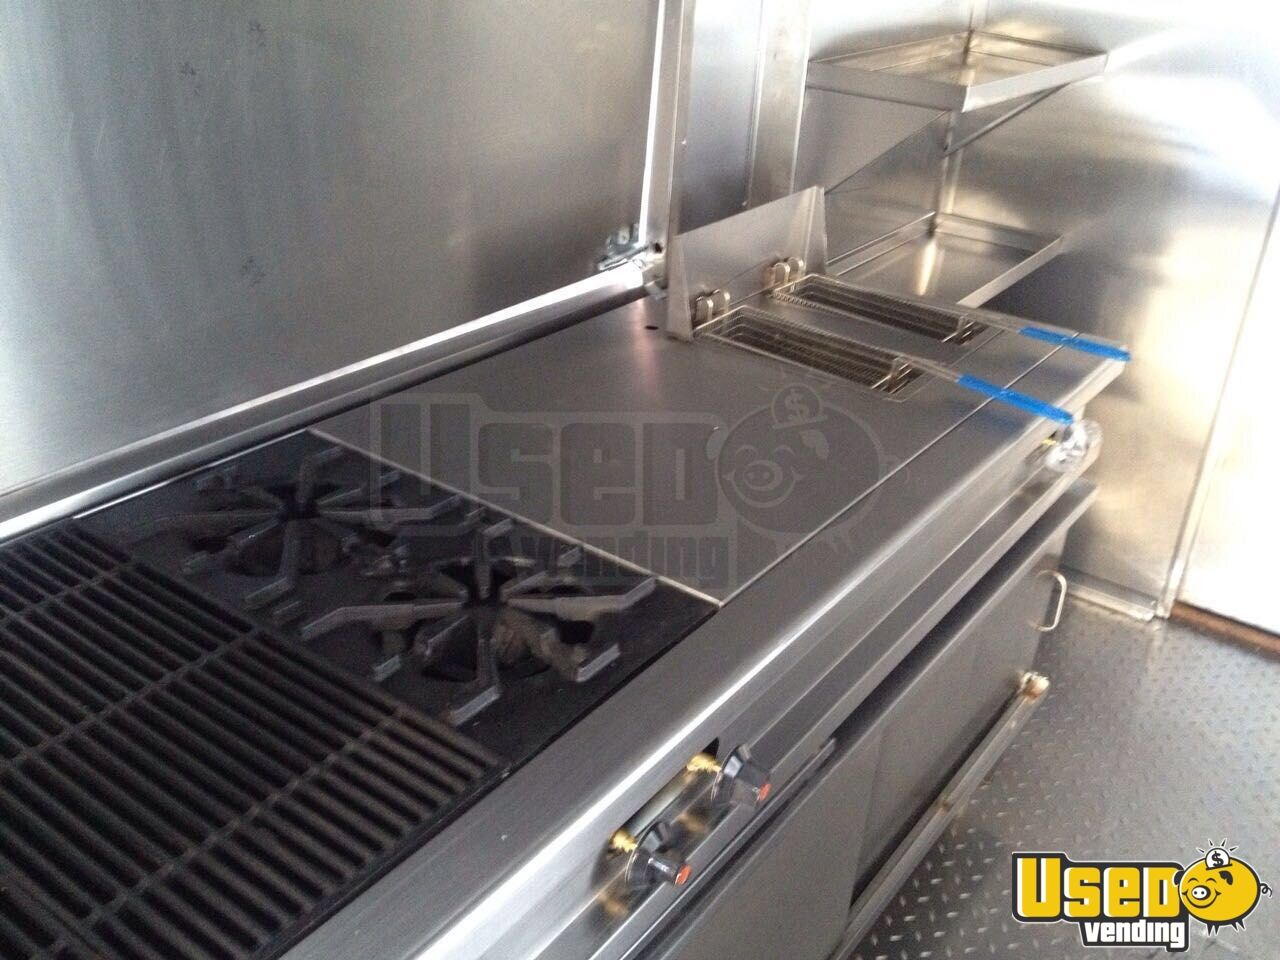 1999 Chevy All-purpose Food Truck Diamond Plated Aluminum Flooring Florida Gas Engine for Sale - 6